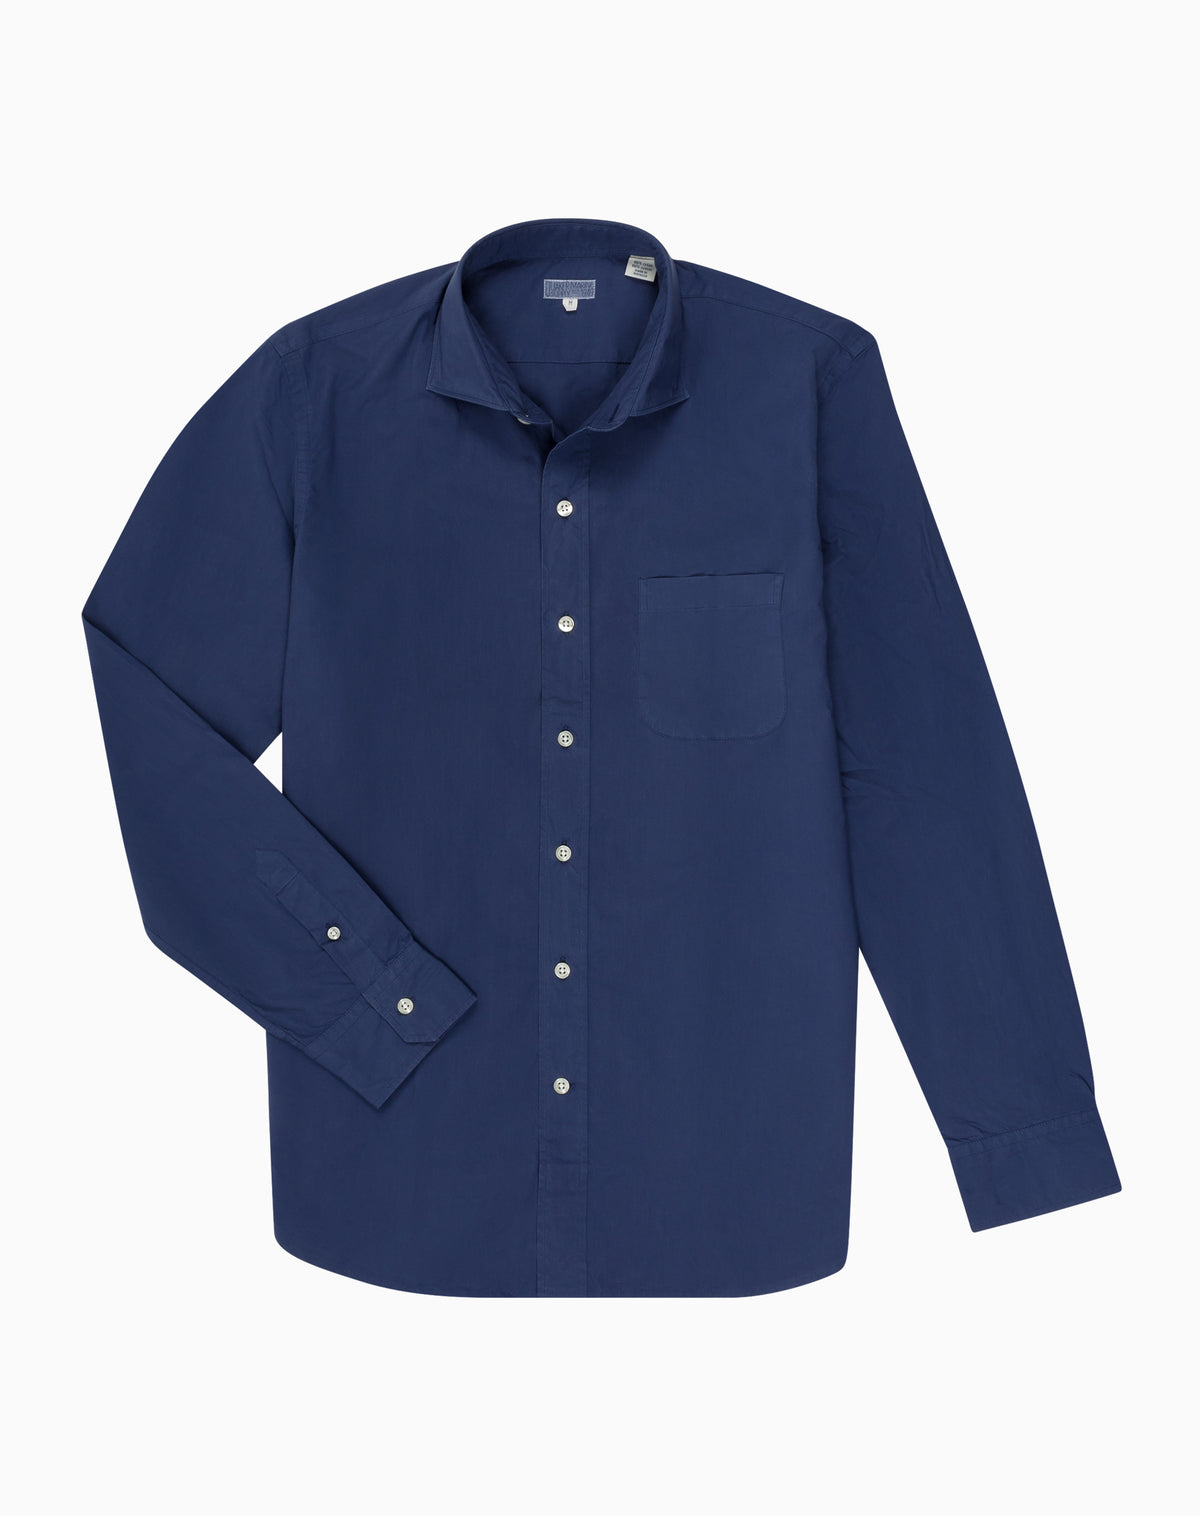 Poplin Shirt in Navy Blue